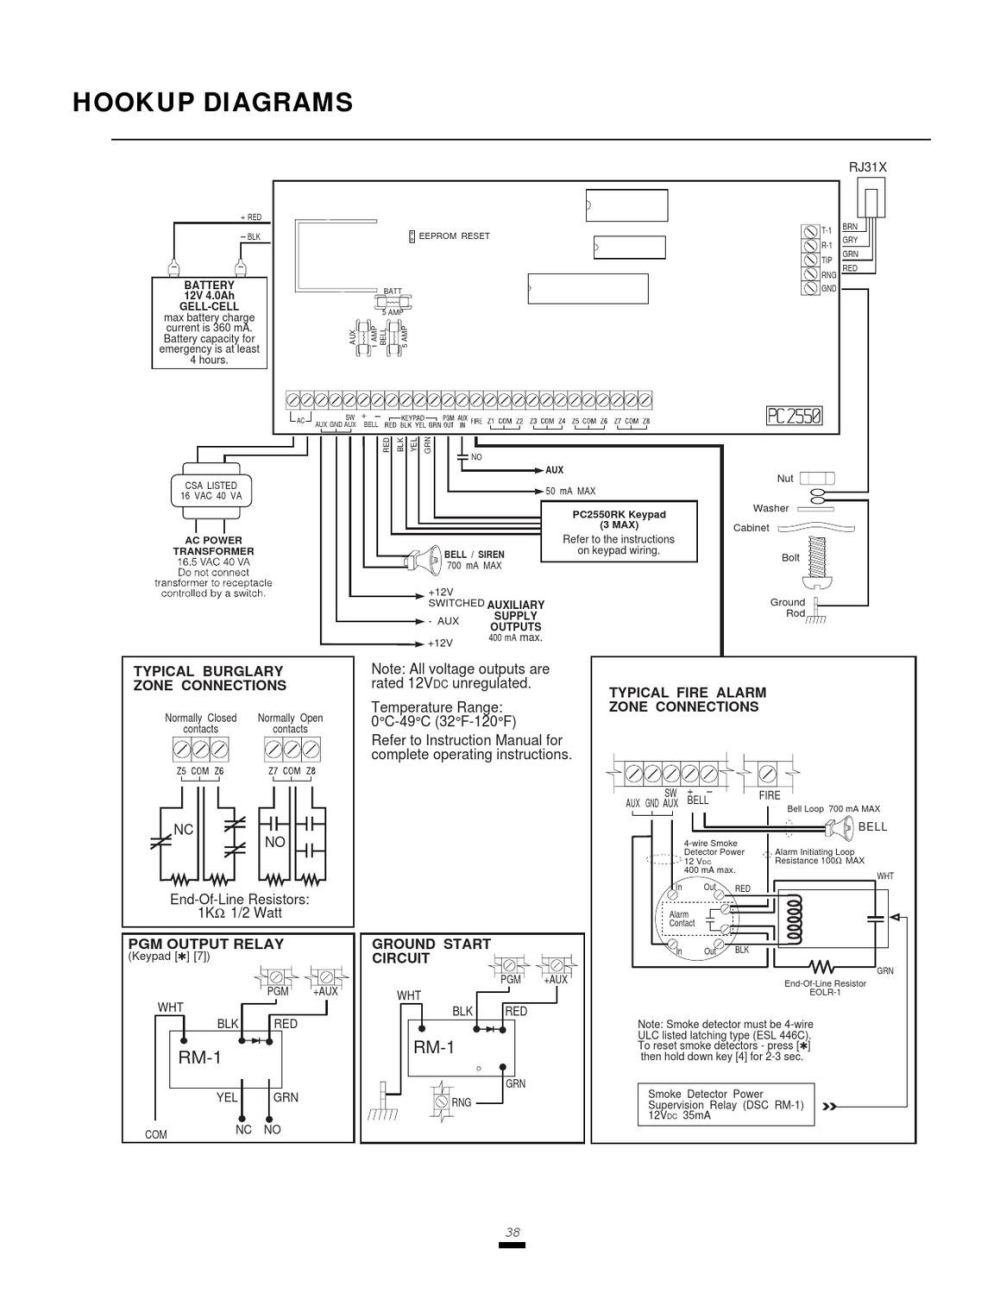 medium resolution of dsc 1500 wiring diagram wiring diagramdsc 1500 wiring diagram wiring diagramdsc pc1500 installation manualpc1500 user manual